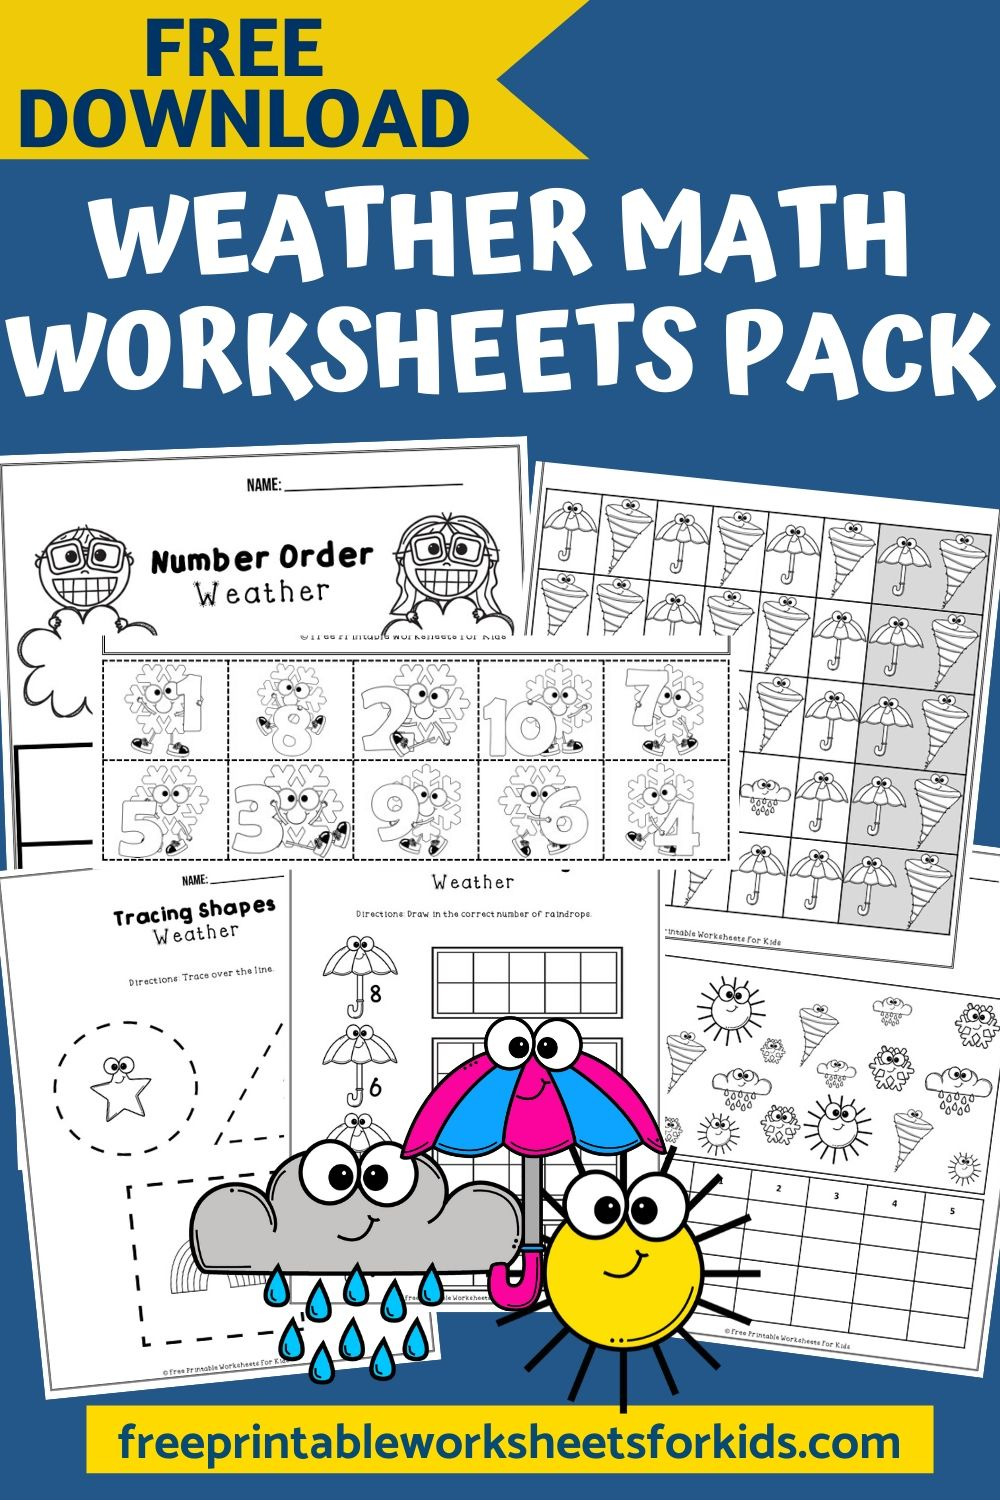 Fun Weather Printables for Preschool and Kindergarten | Weather-Themed Counting Games | Hands On Math Homeschool Activities | Kids Classroom Center Ideas and Worksheets #FreePrintableWorksheetsForKids #weather #snow #cloud #rain #sun #storm #count #number #pattern